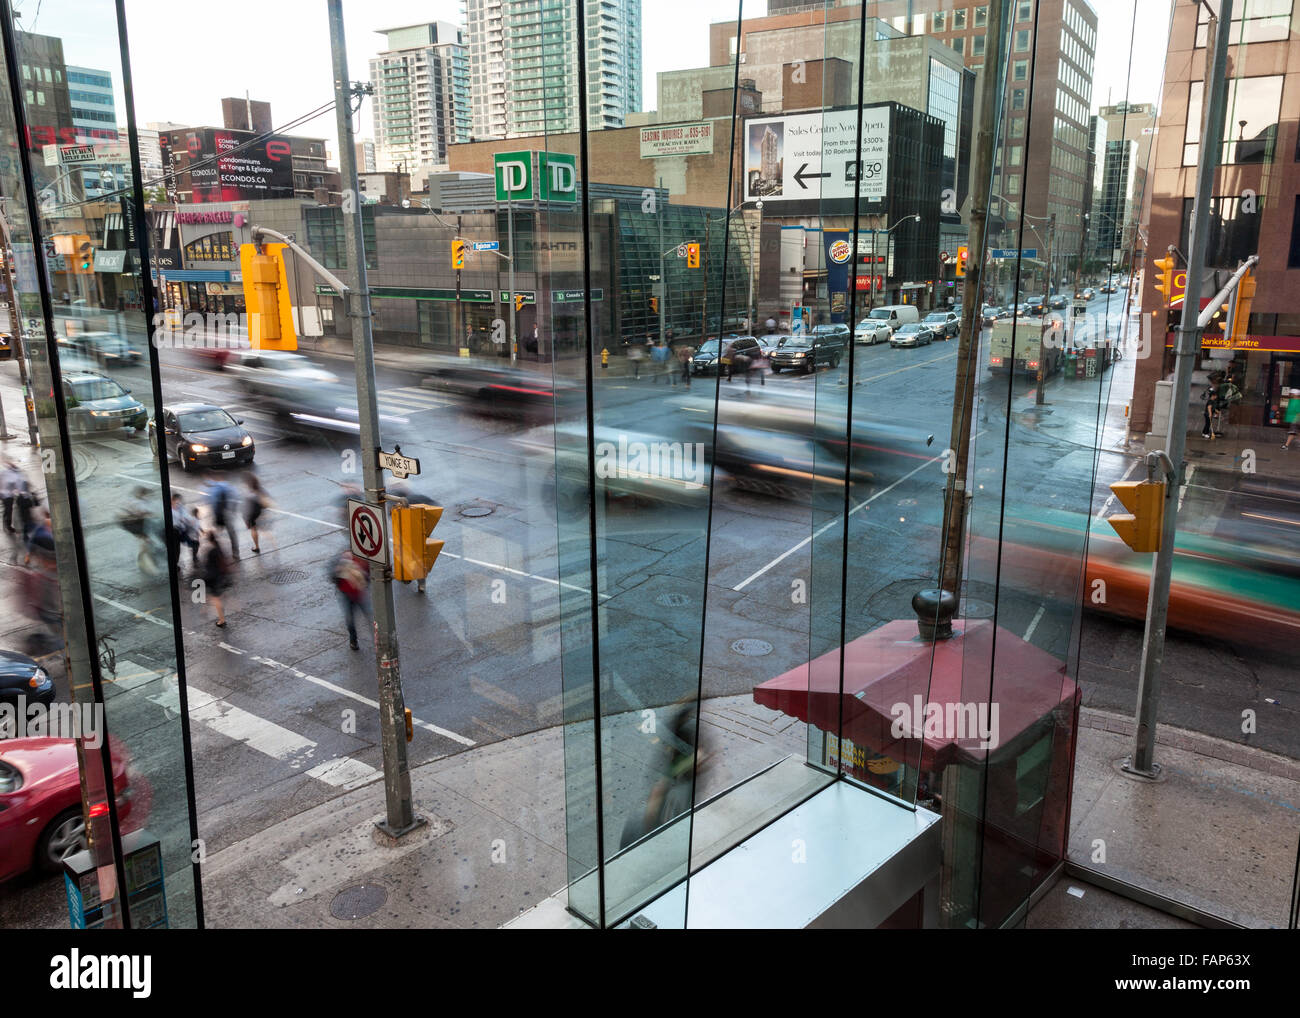 Busy urban intersection in the evening with busy traffic and pedestrians. - Stock Image